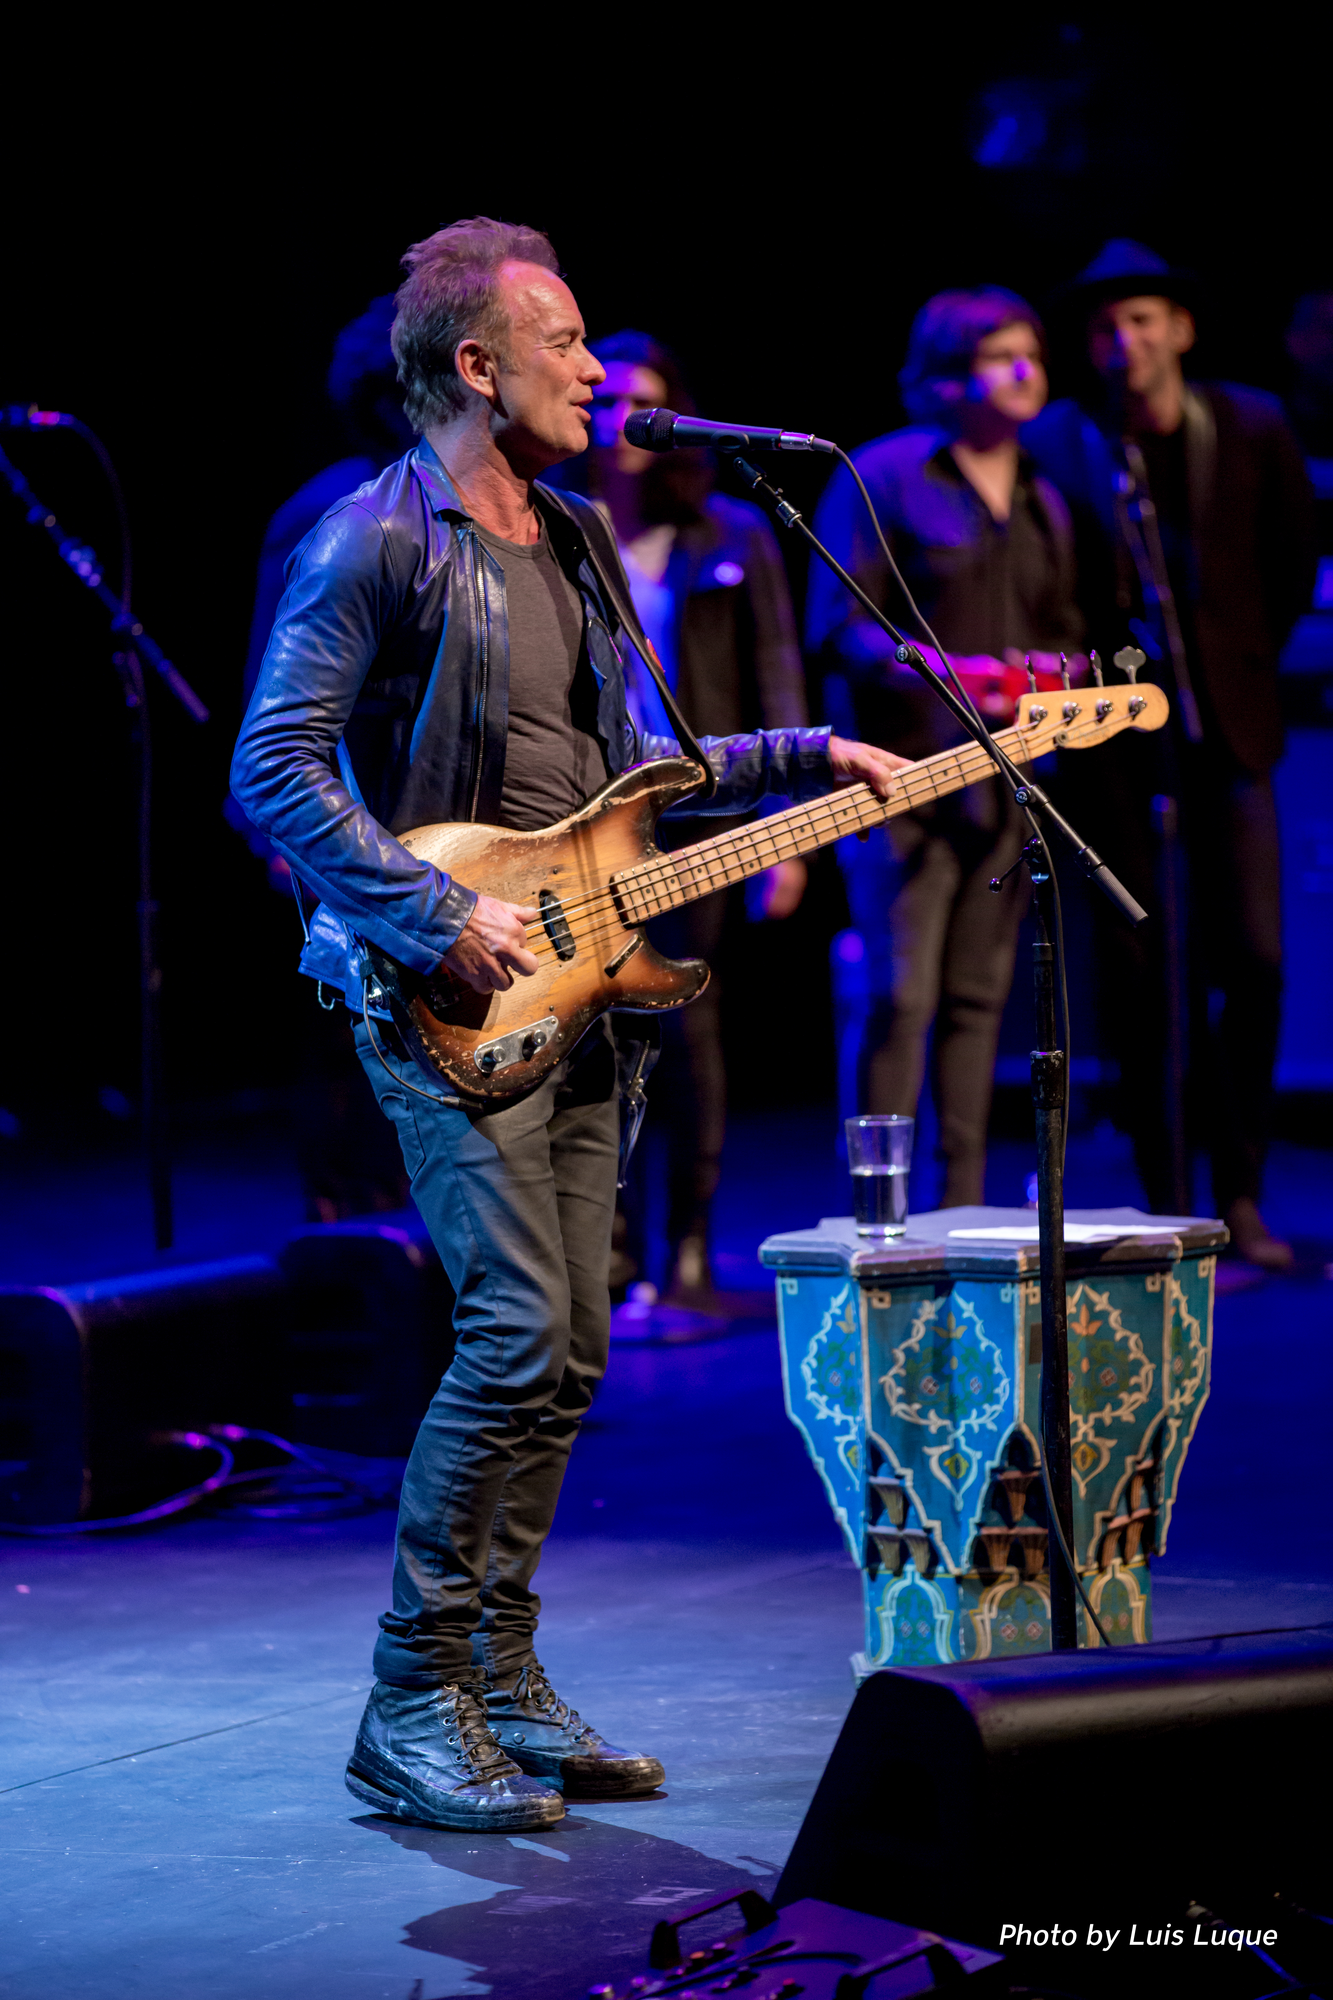 Sting shown playing guitar and singing